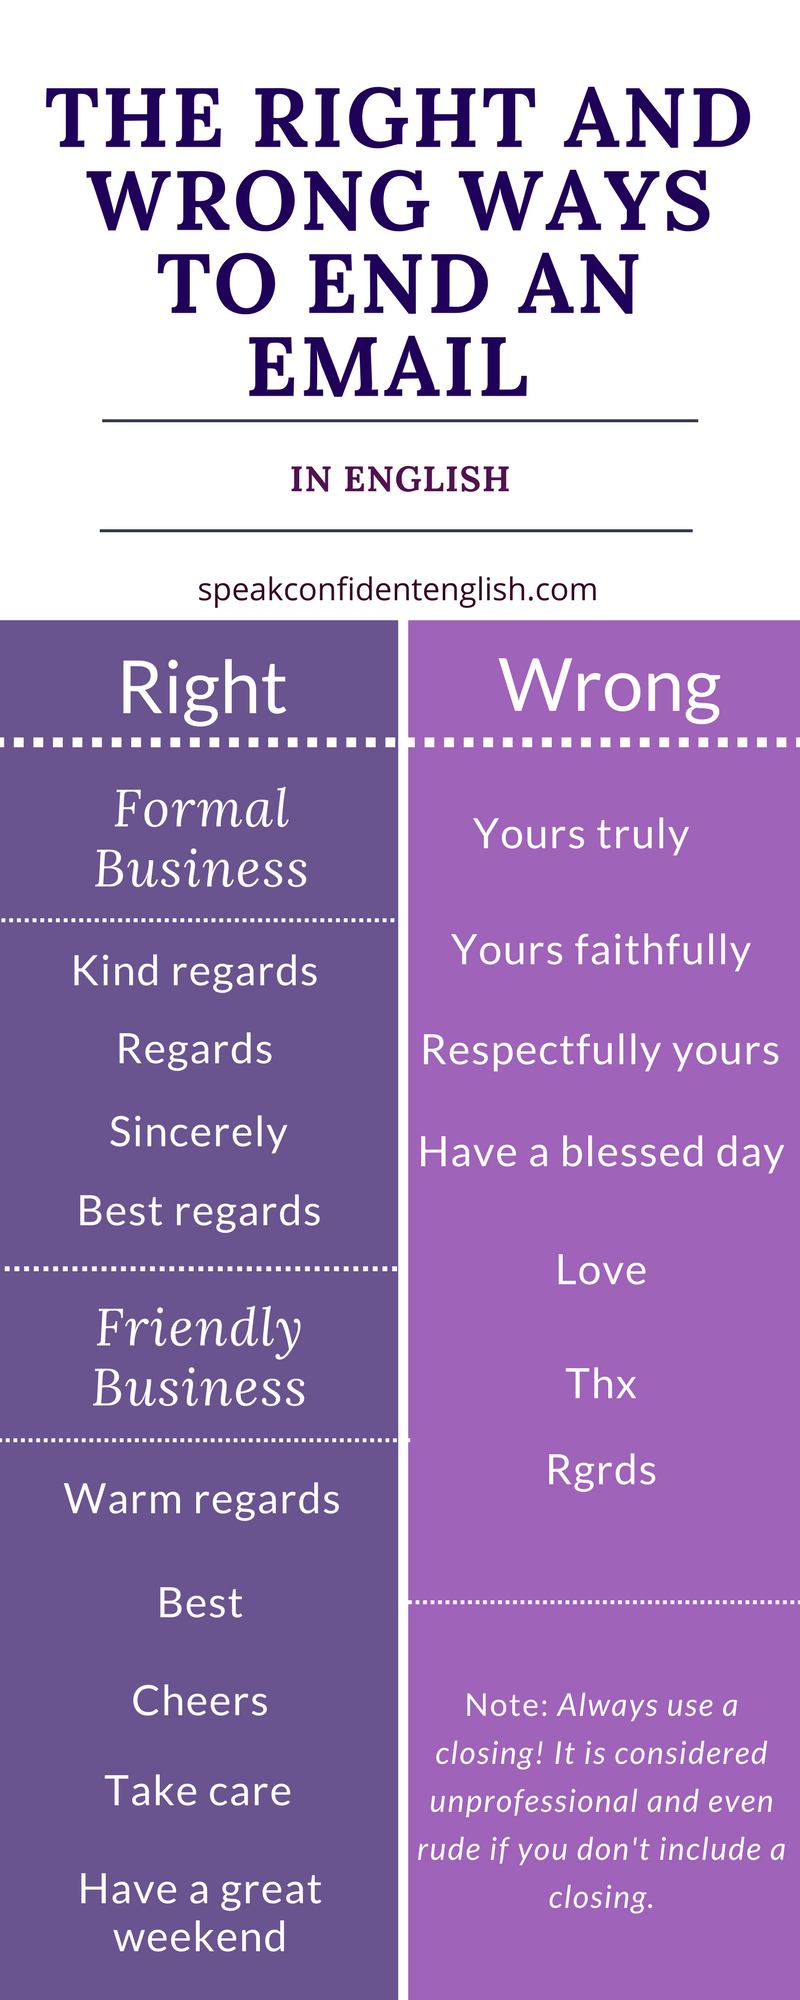 The Right And Wrong Ways To End An Email In English English Writing Learn English Writing Skills